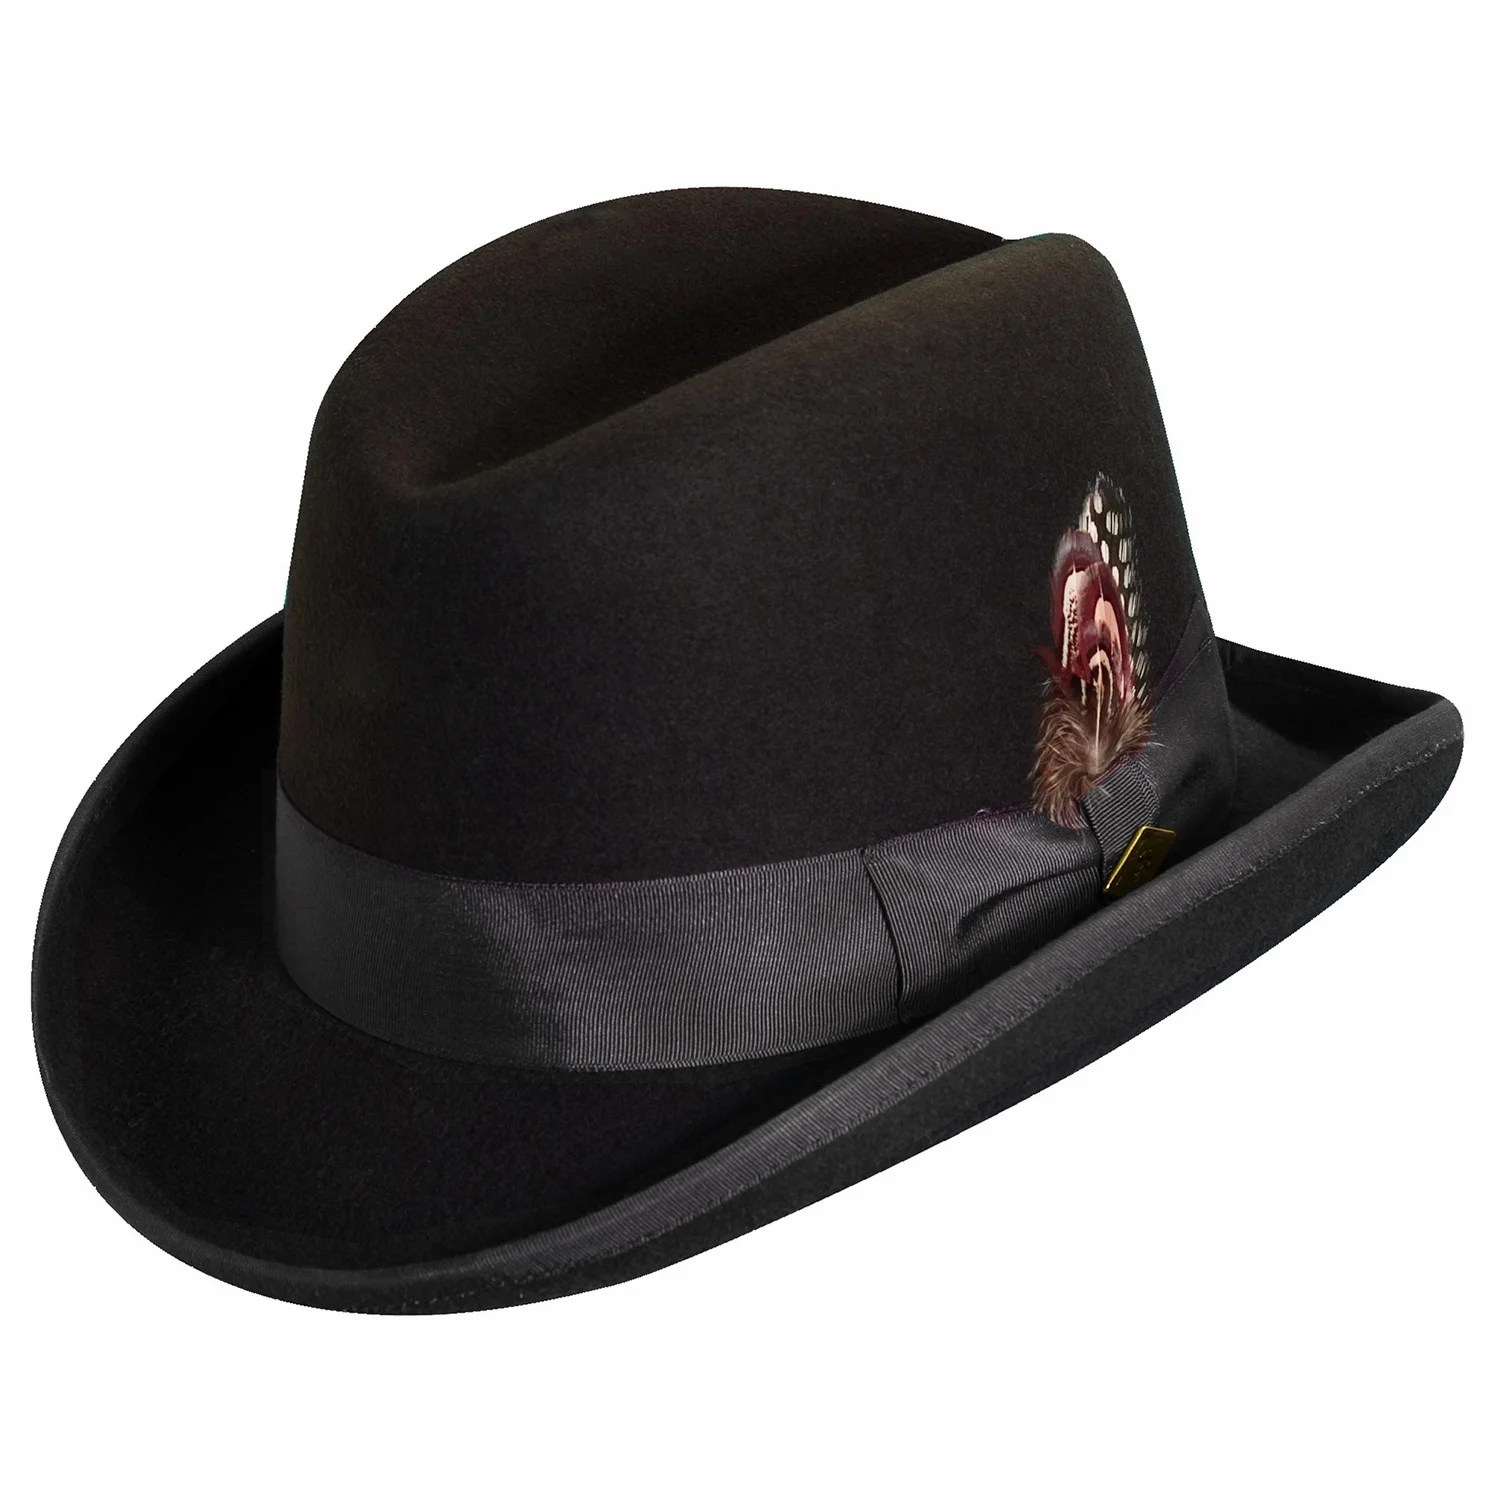 Cash Pool Homburg Stacy Adams Wool Felt Homburg Hat